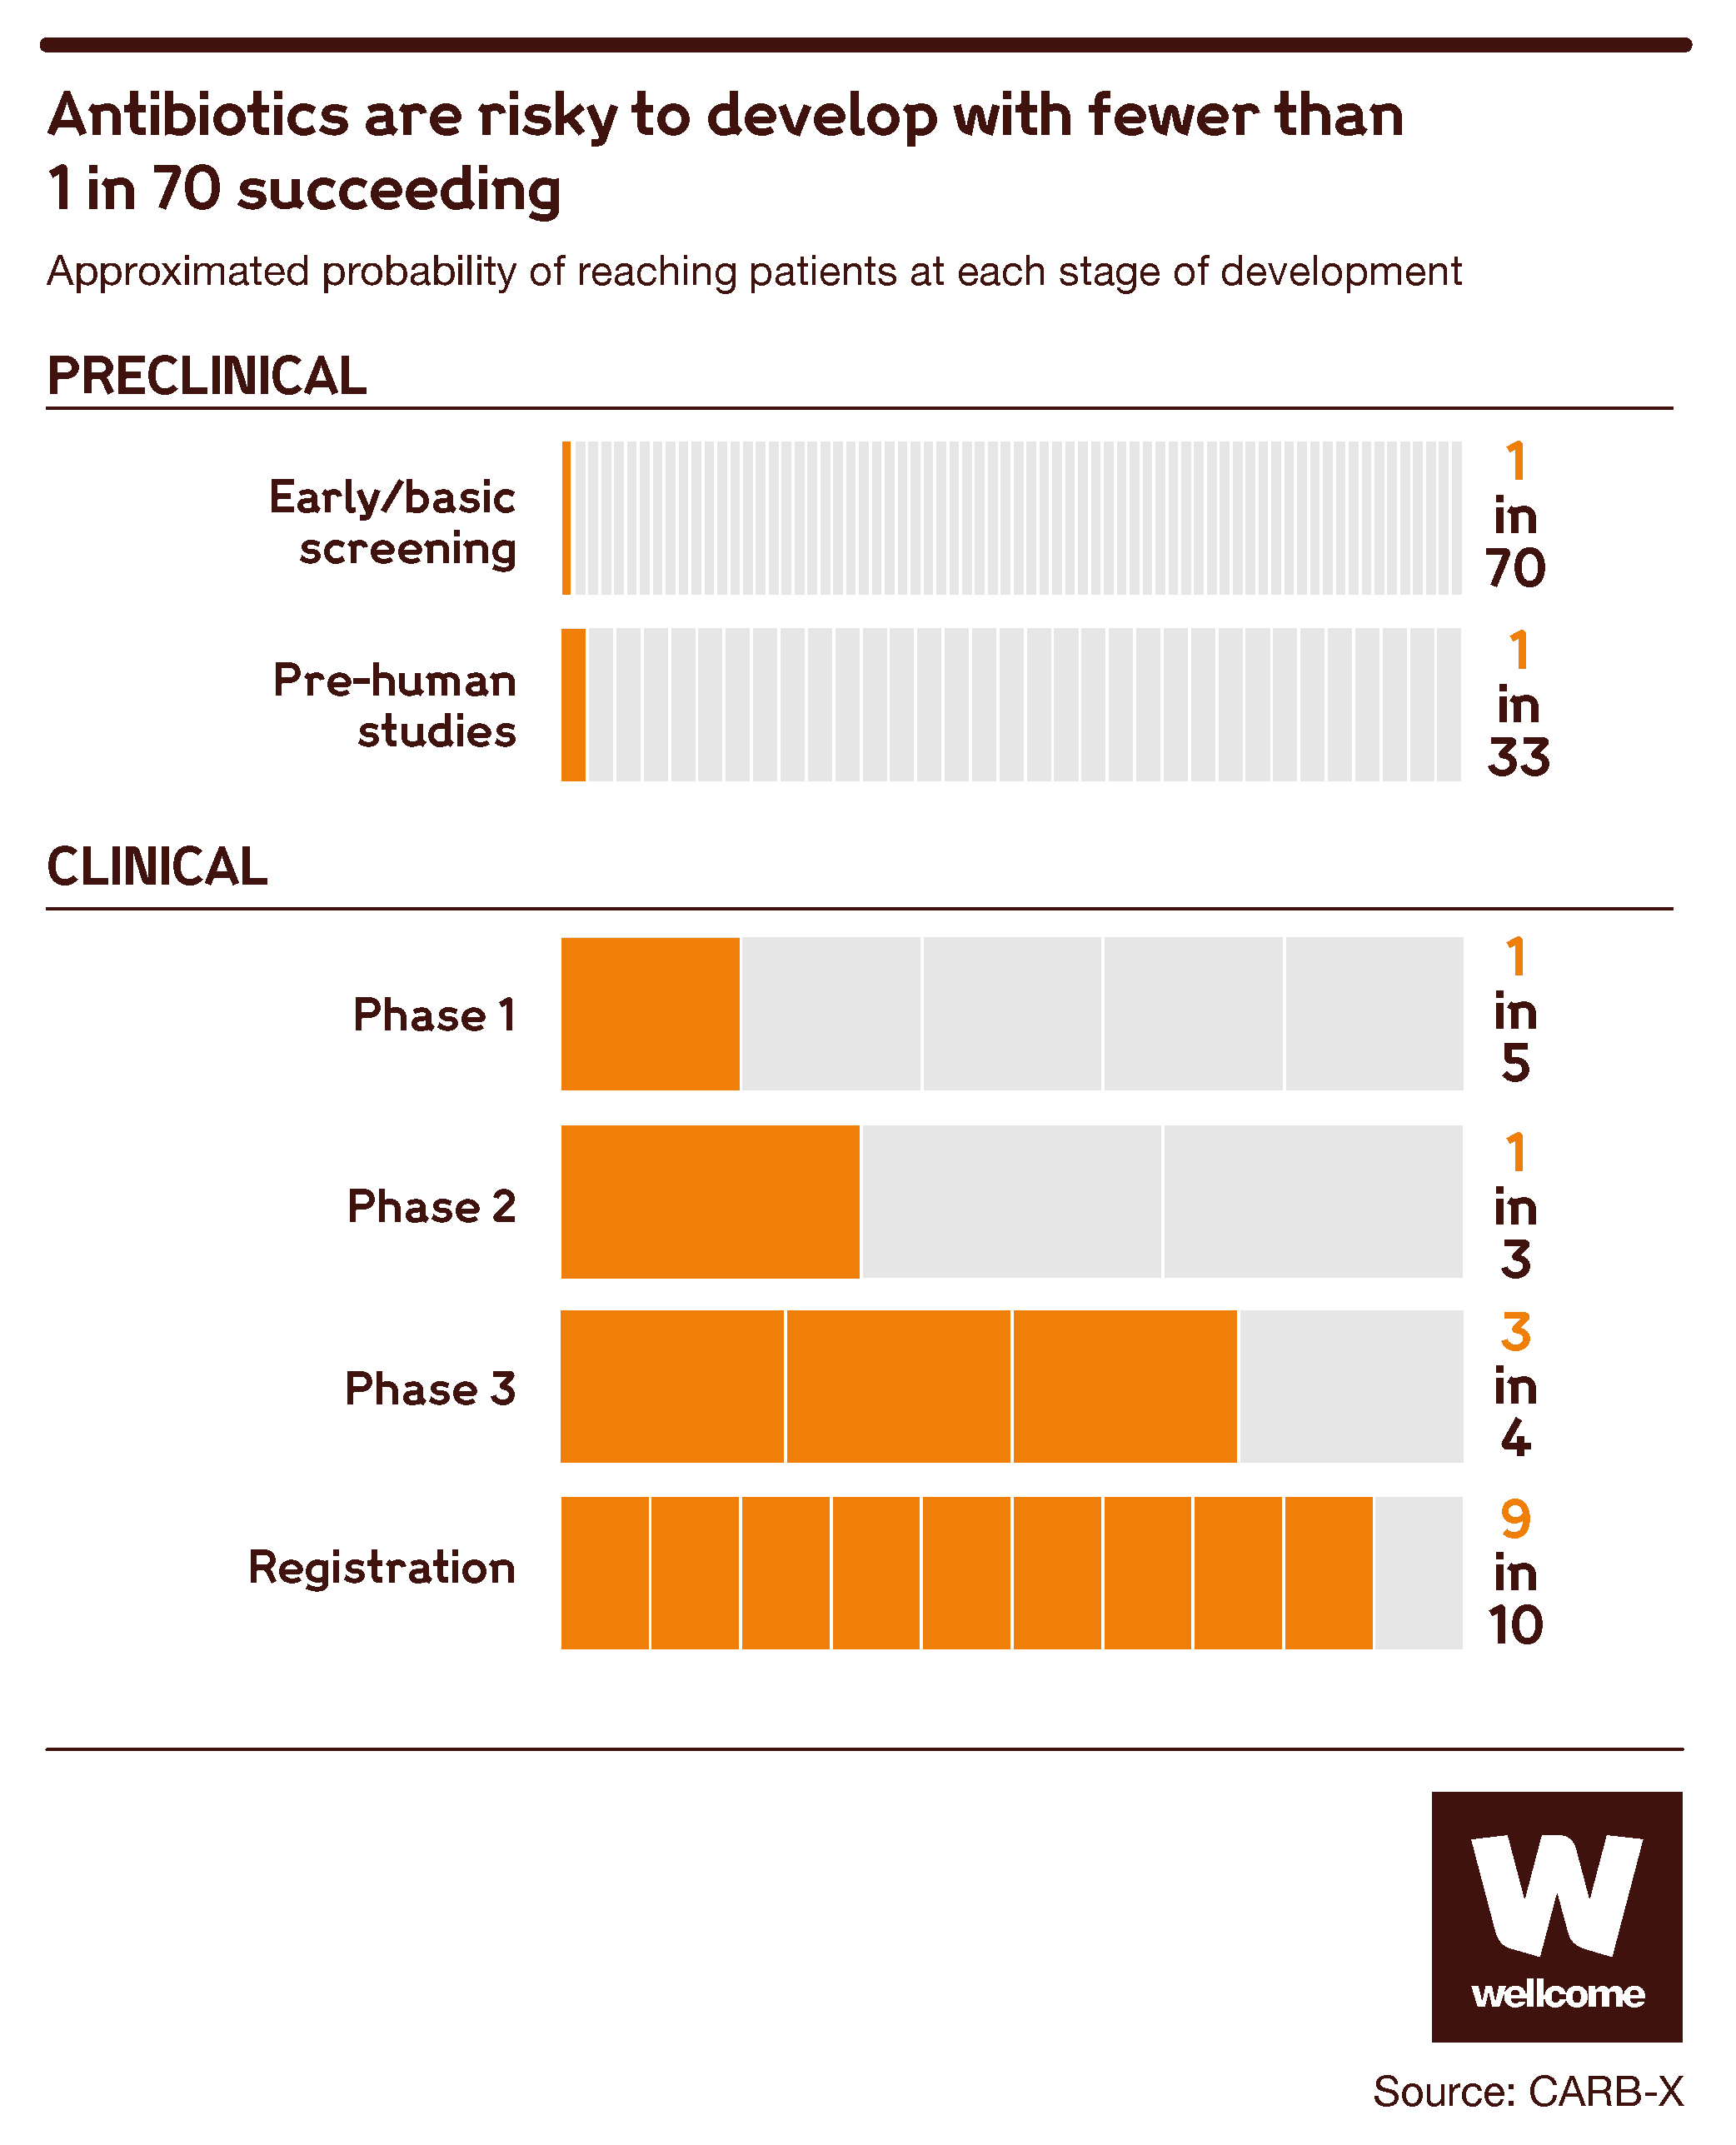 Graph showing the failure rate for antibiotic development at preclinical and clinical stages.